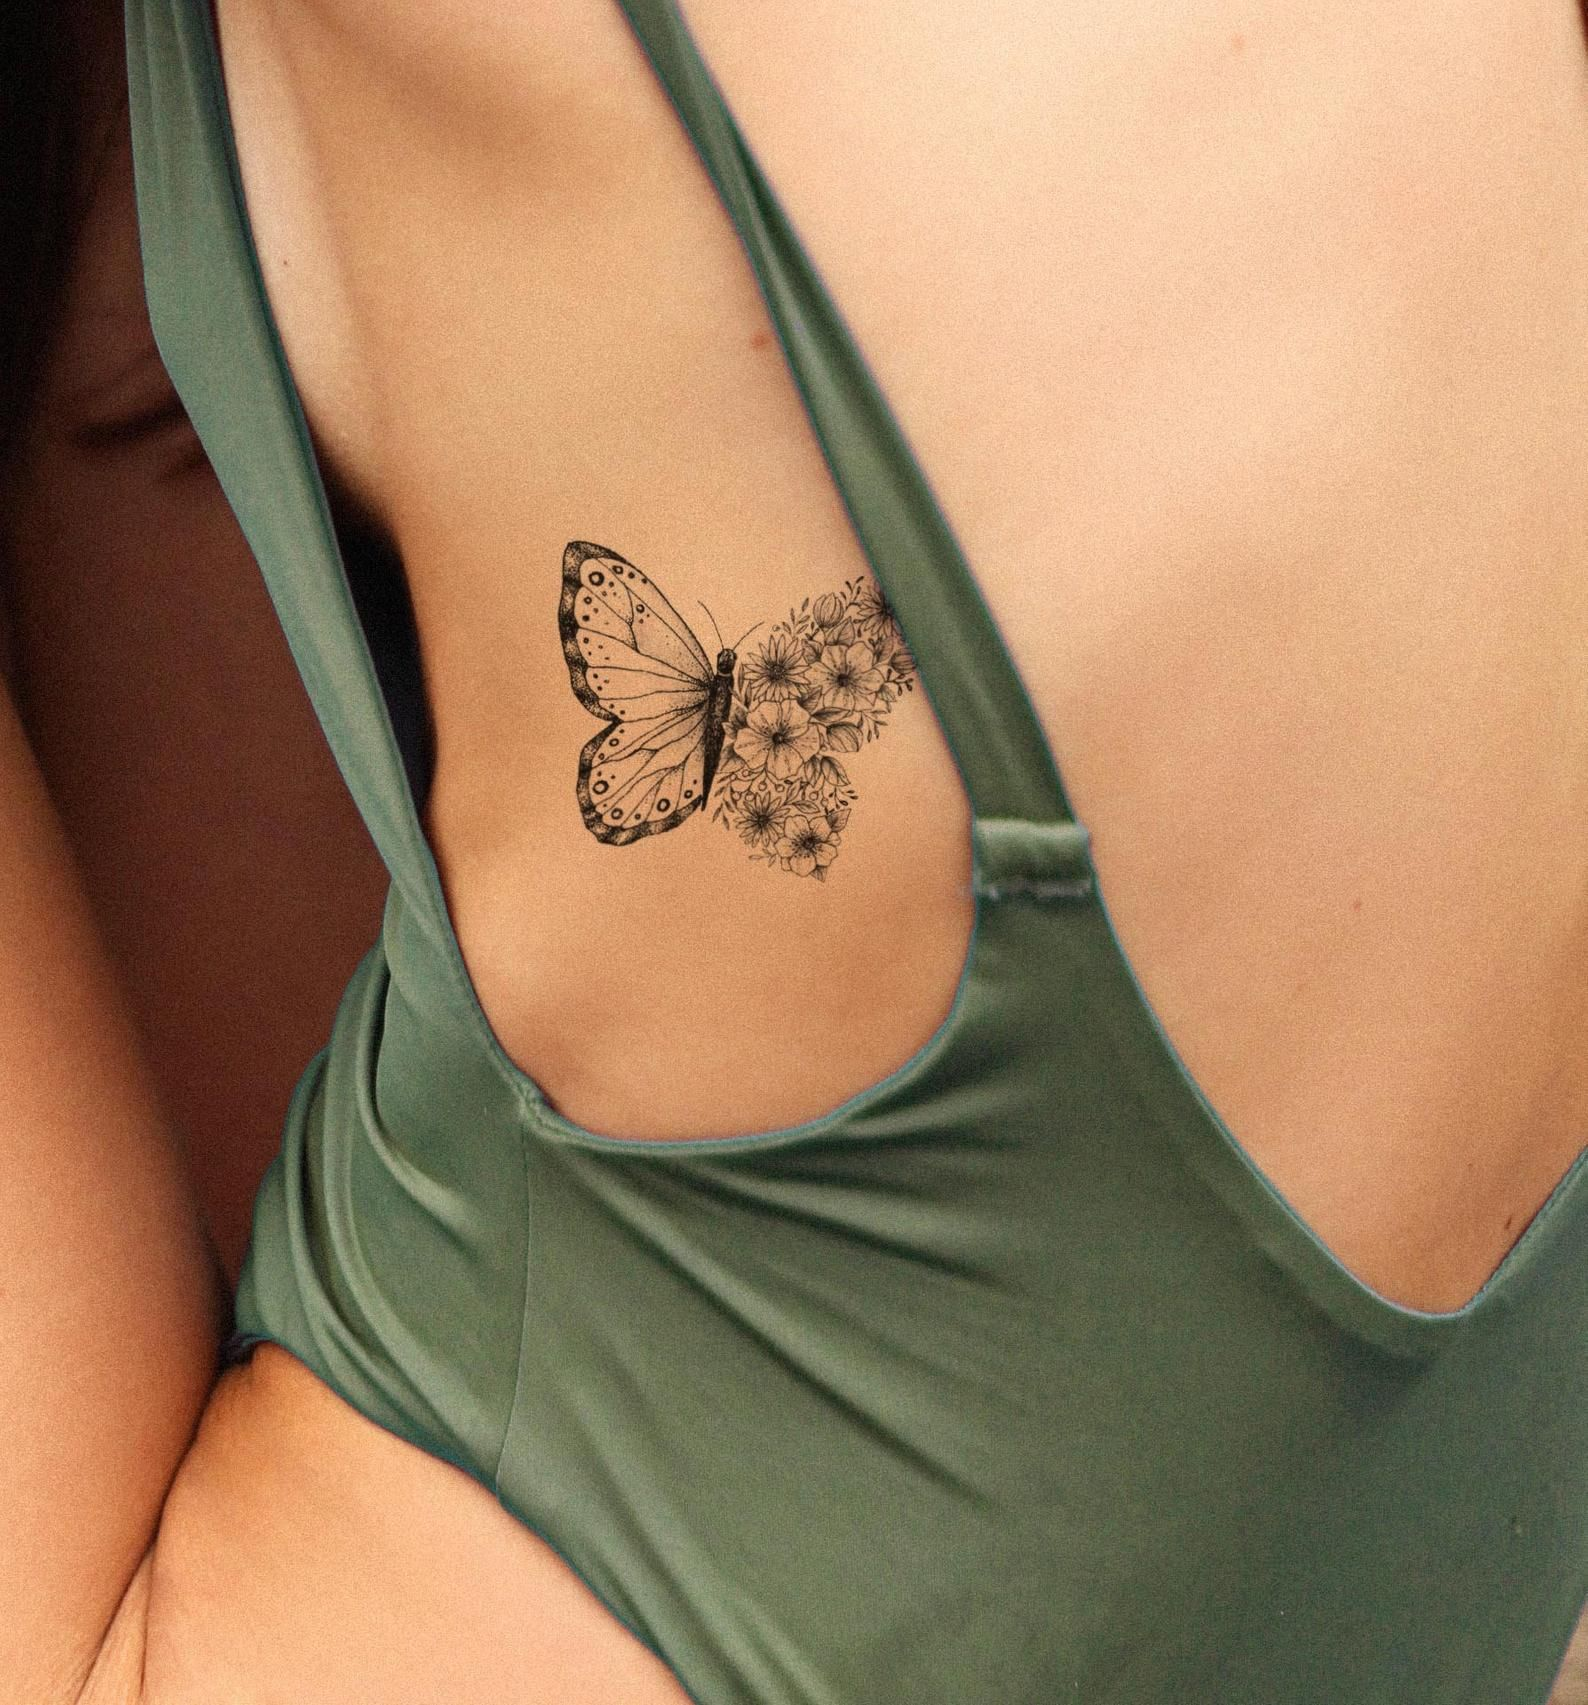 Butterfly Tattoo Fake Tattoo Black And White Butterflies Tattoo Girly Tattoo Big Tattoo Girl Temporary Tattoo By Temp Tat In 2020 White Butterfly Tattoo Girls Temporary Tattoos Girly Tattoos